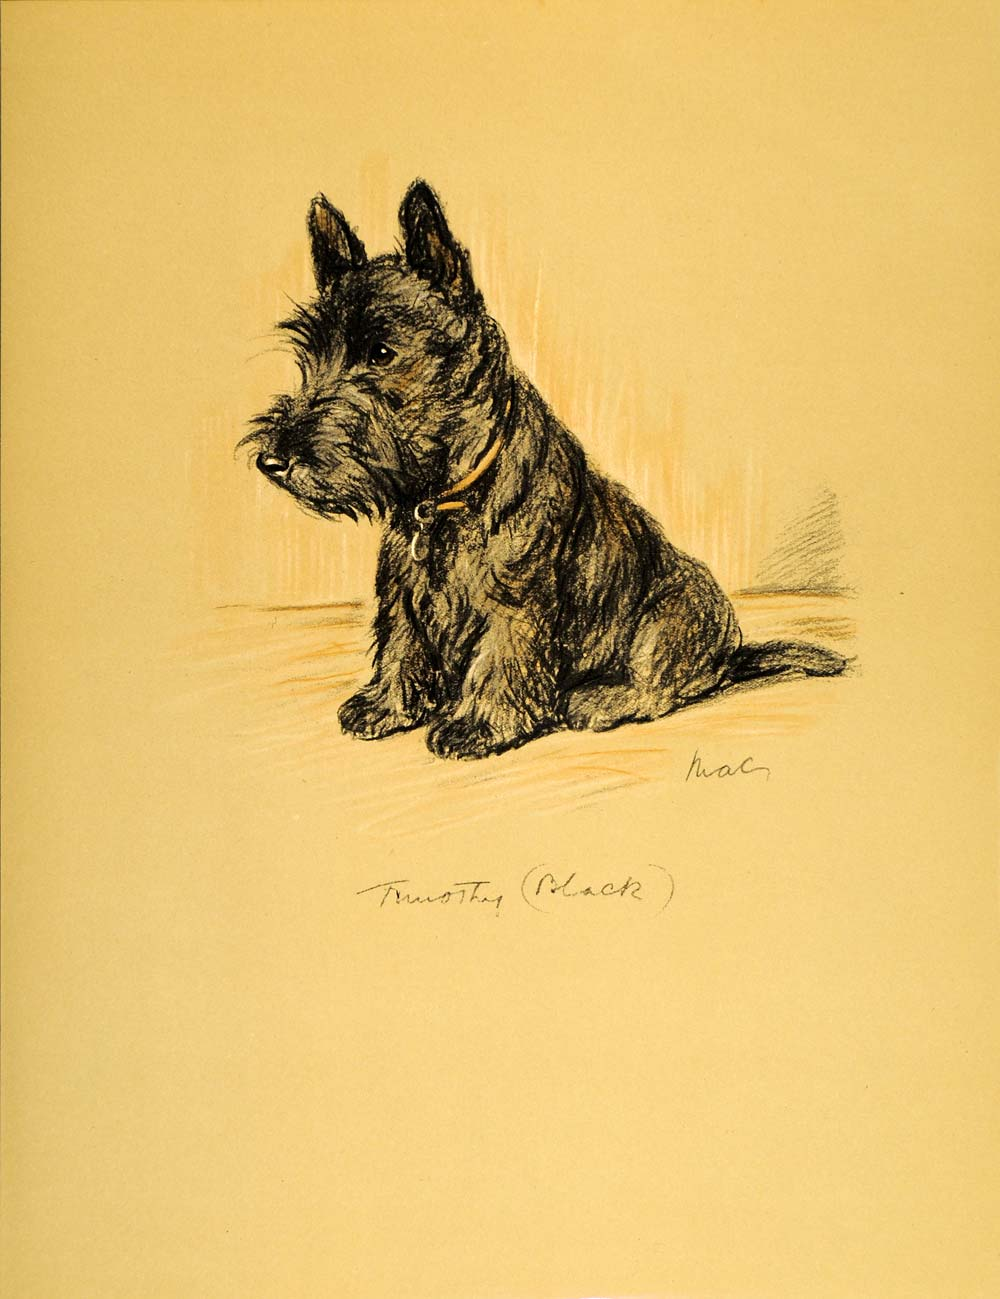 Australia Scottish Terrier Puppy Dog Vintage Travel Advertisement Art Poster